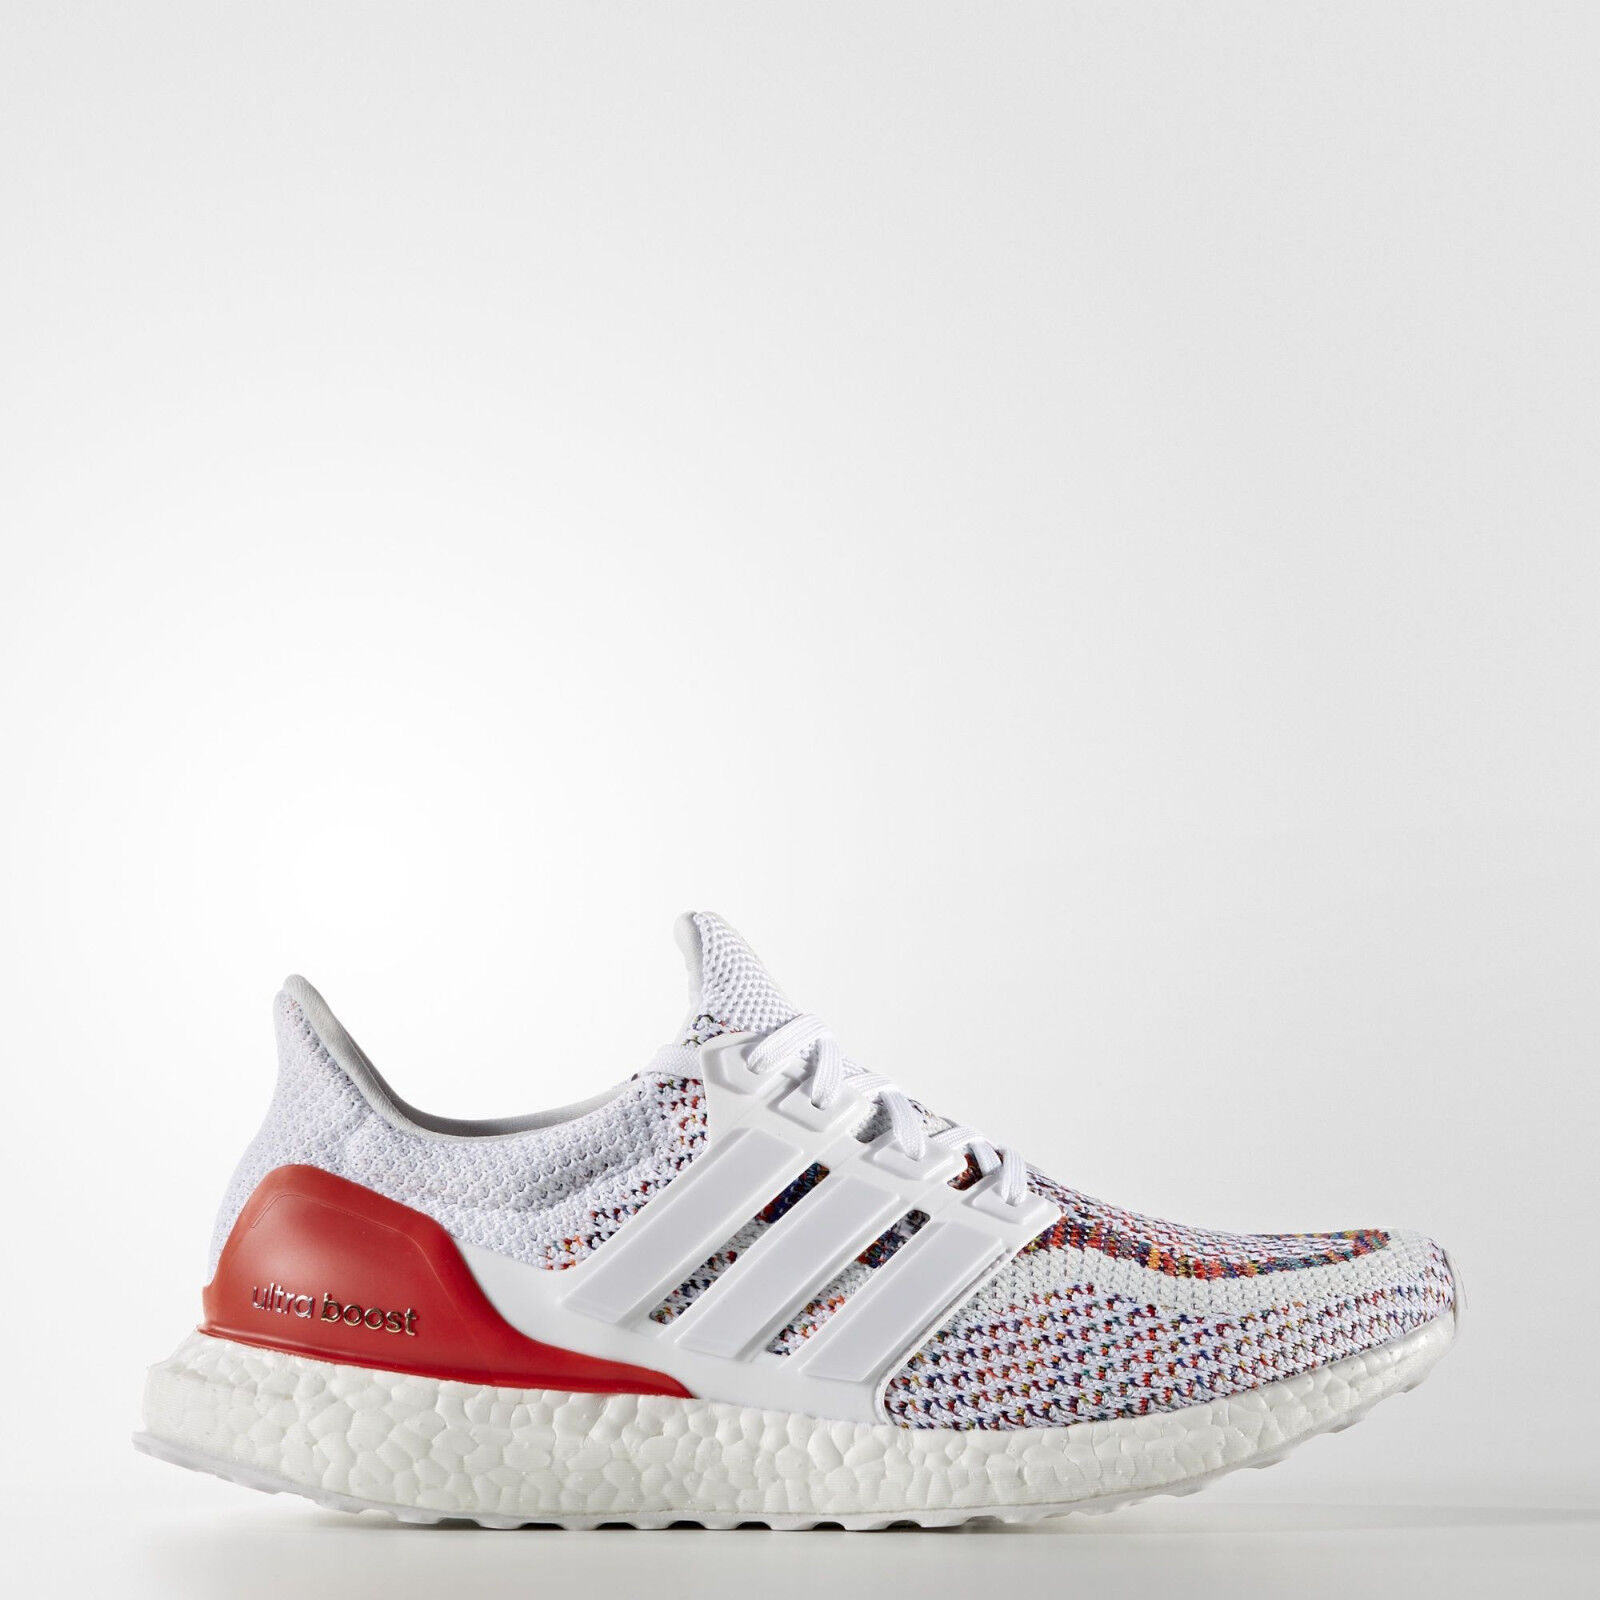 Adidas Ultra Boost 2.0 Multicolore Arc-en-Chaussures de course rouge blanc BB3911 PDNV